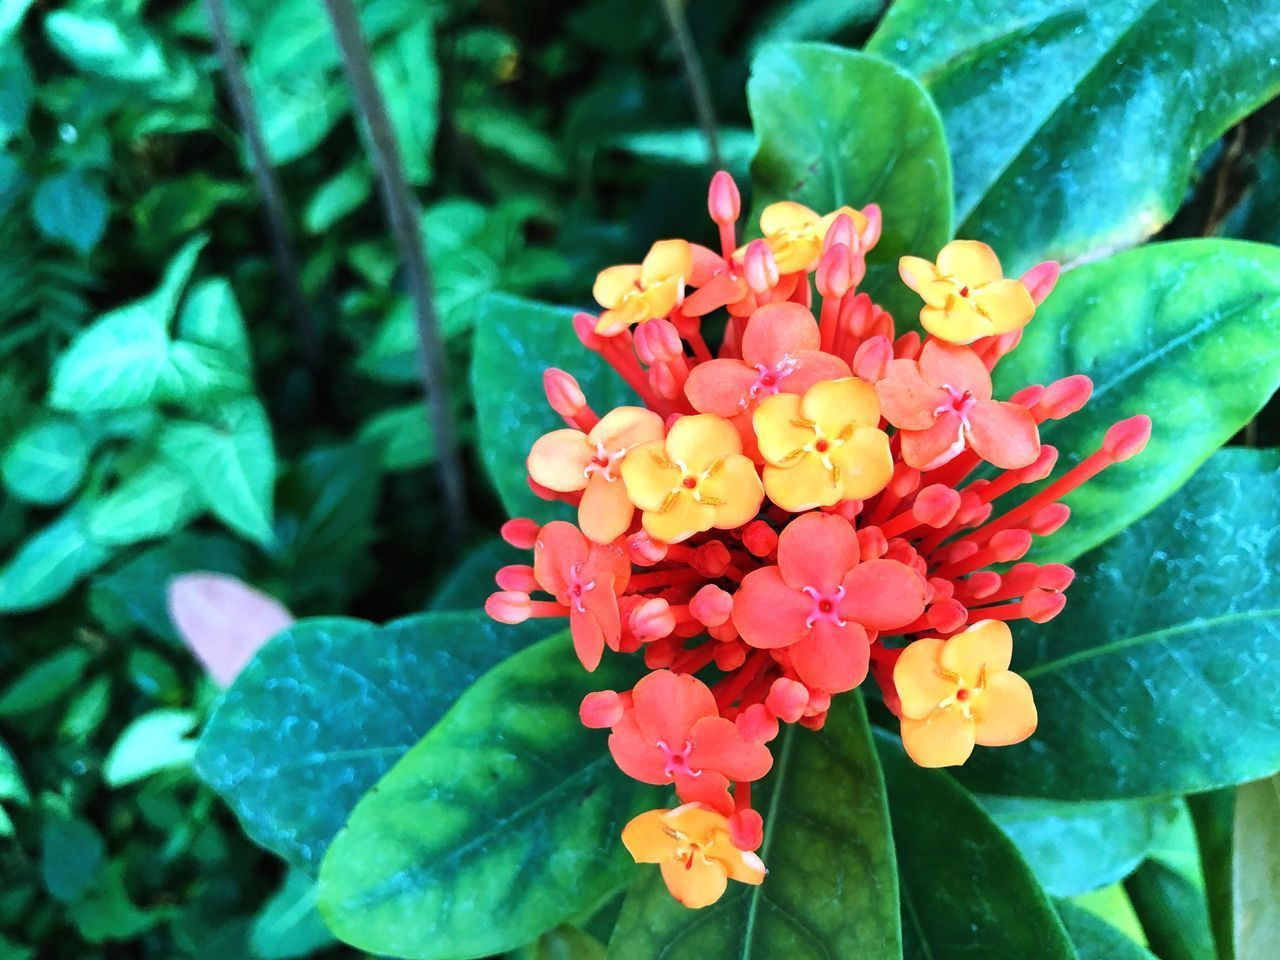 flowering plant, flower, beauty in nature, vulnerability, petal, fragility, freshness, plant, plant part, leaf, growth, close-up, flower head, inflorescence, nature, day, no people, focus on foreground, green color, outdoors, lantana